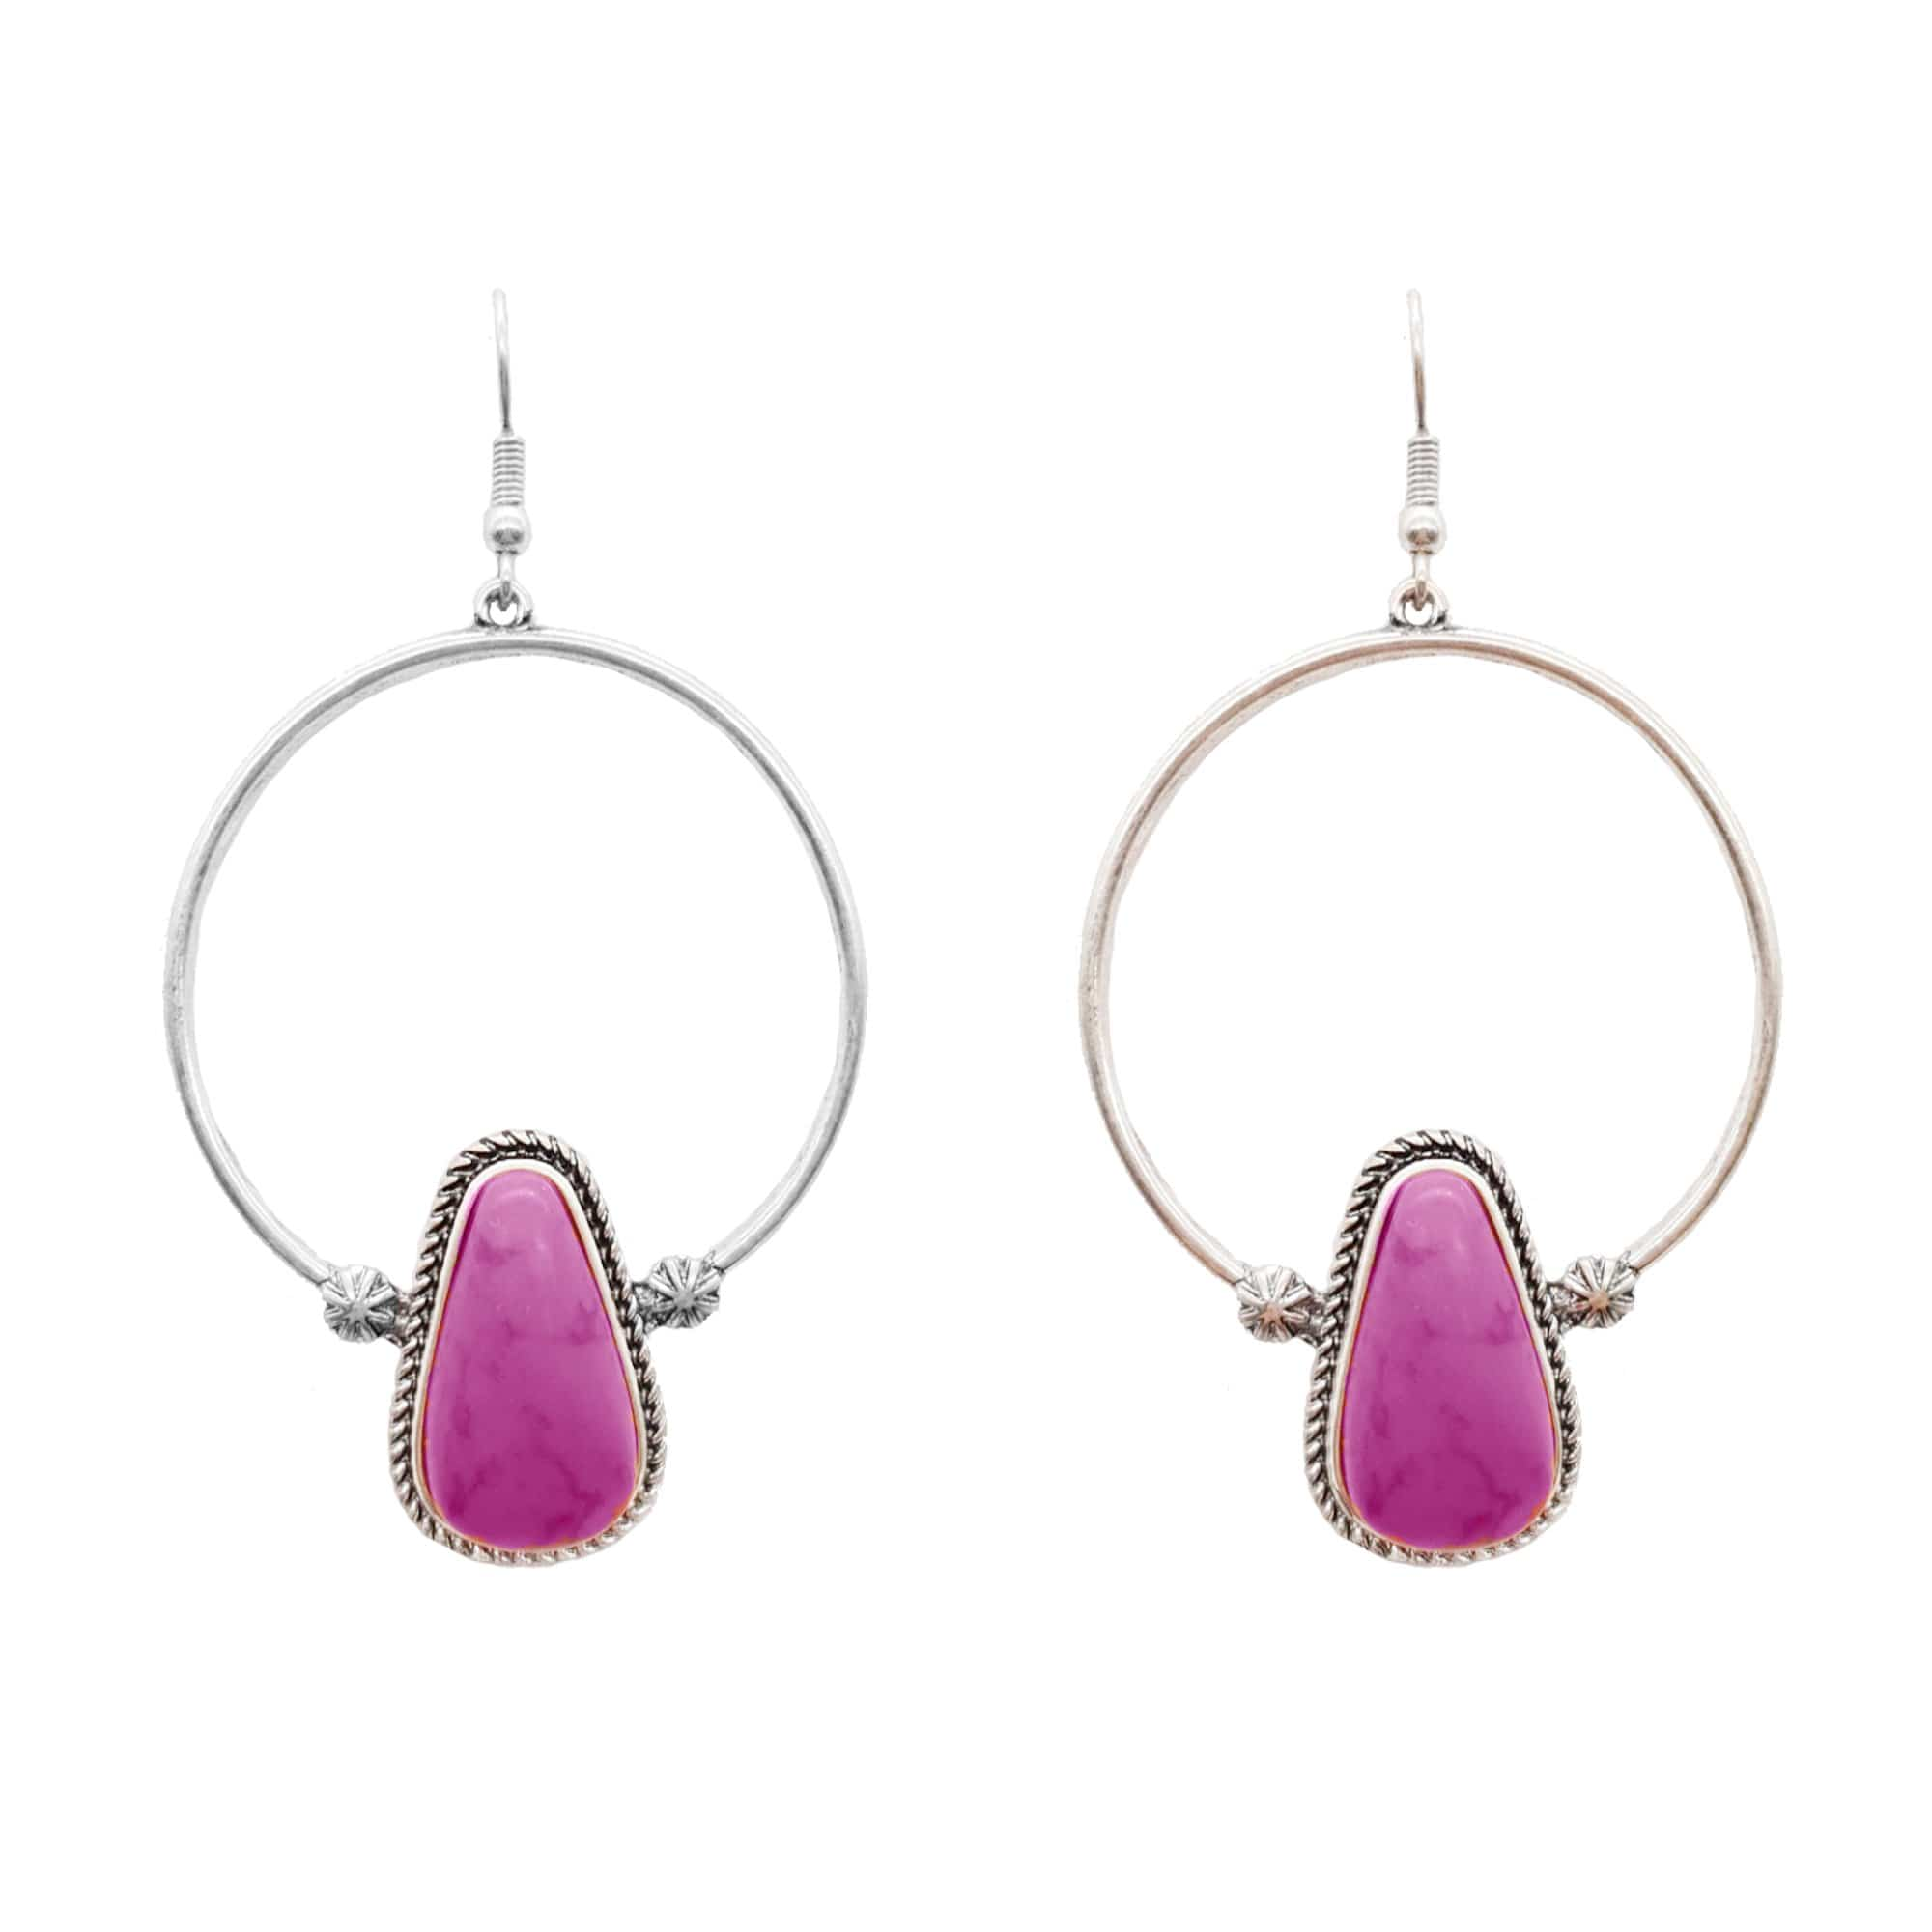 Accessorize In Style Fashion Earrings Fashion Hoop Pink Tear Drop Stone Earrings